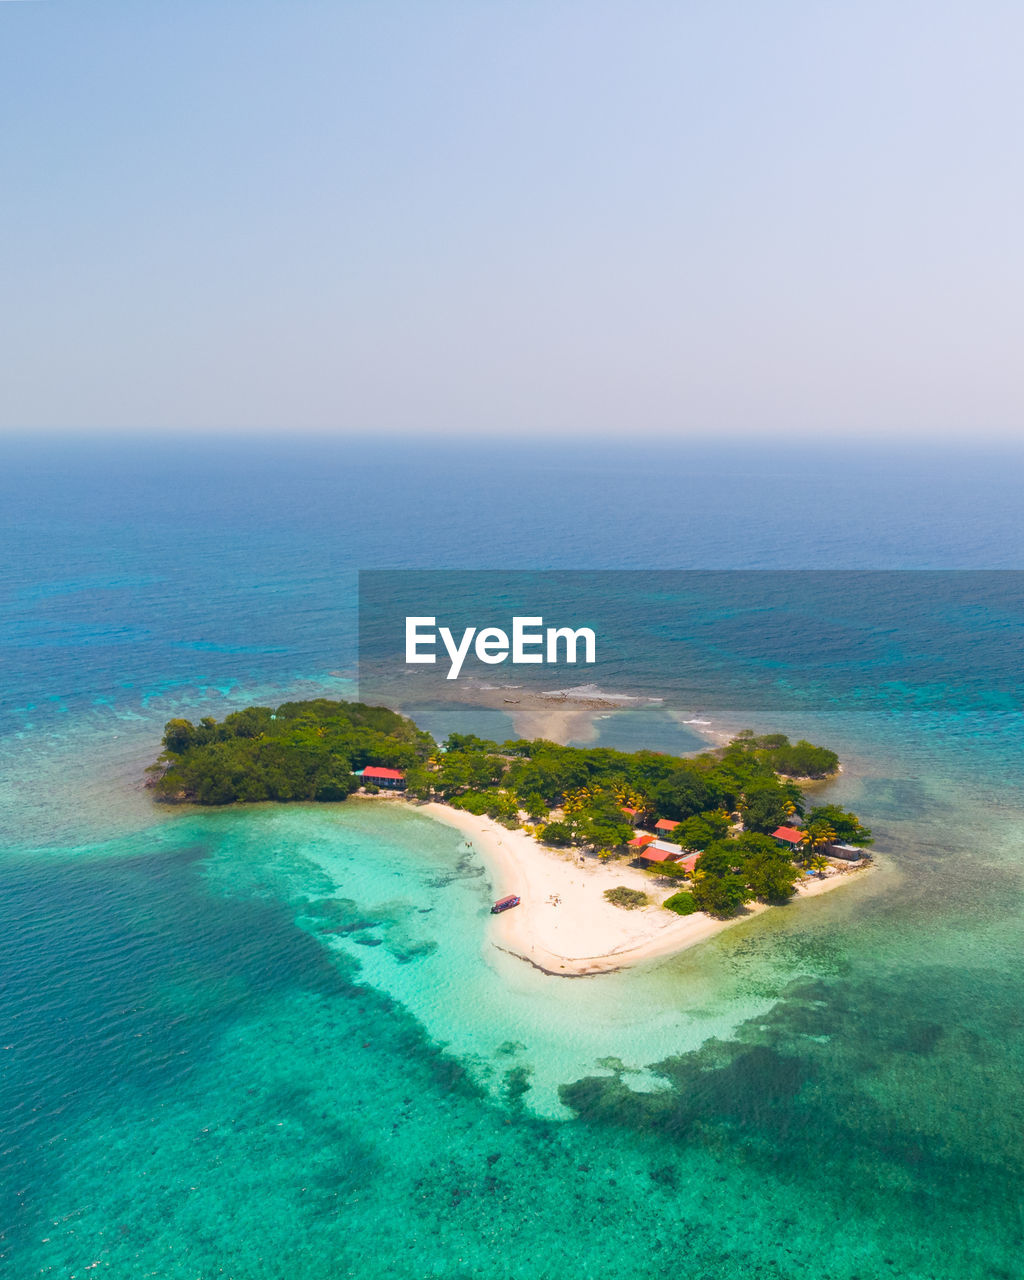 water, sea, sky, horizon, scenics - nature, horizon over water, tranquility, tranquil scene, idyllic, land, nature, beauty in nature, no people, turquoise colored, seascape, copy space, beach, day, island, outdoors, lagoon, swimming pool